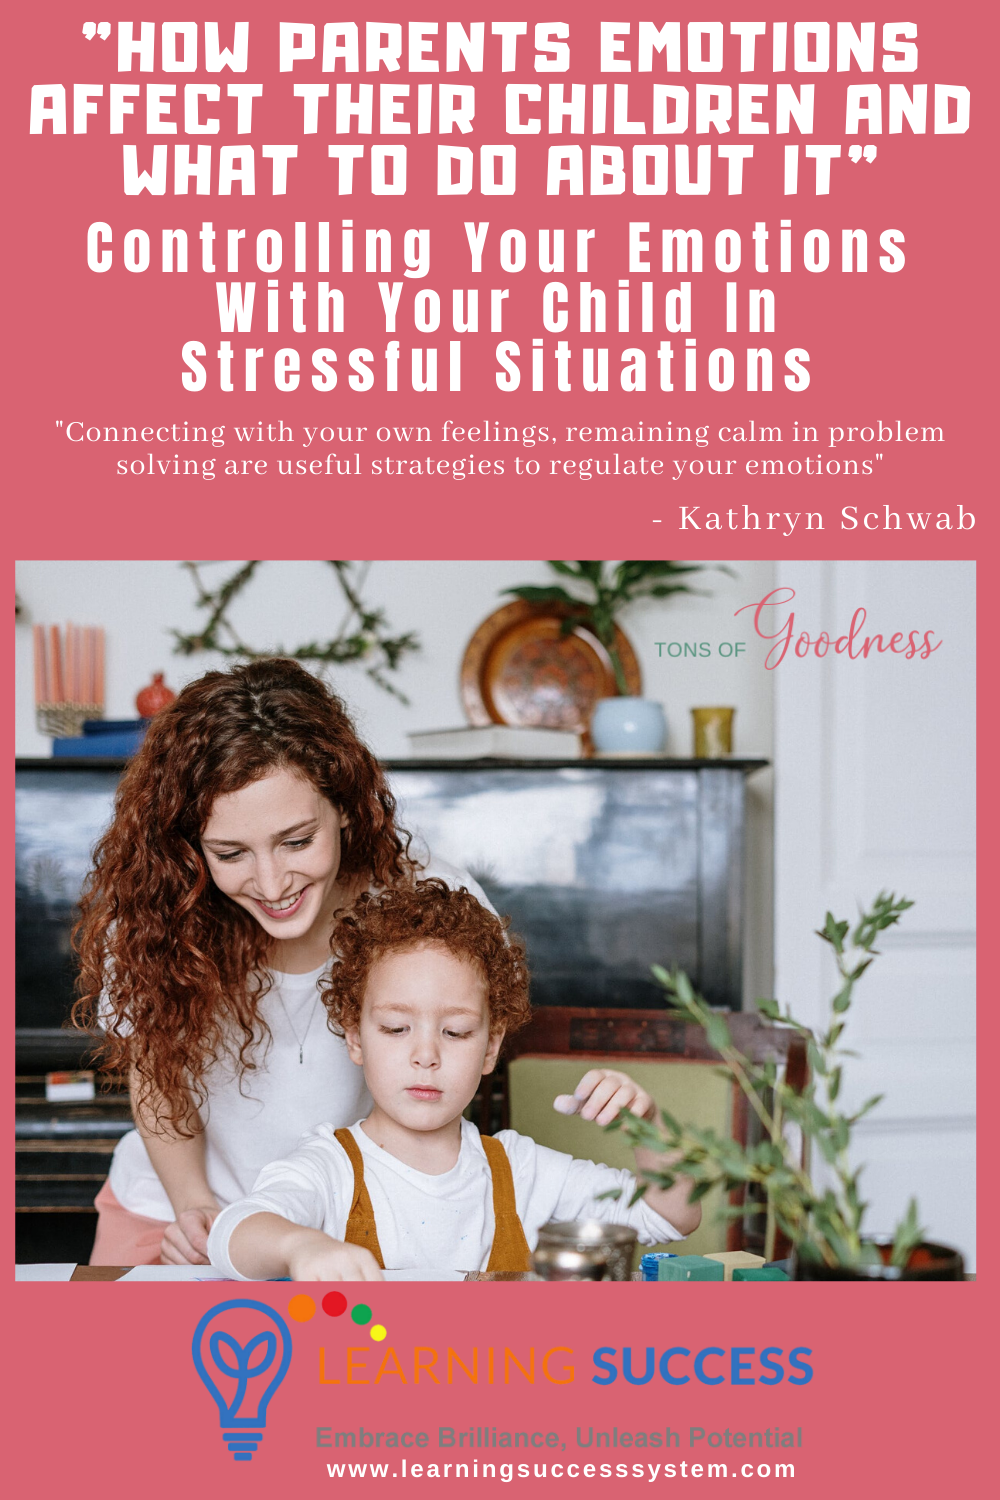 Controlling Your Emotions with Your Child in Stressful